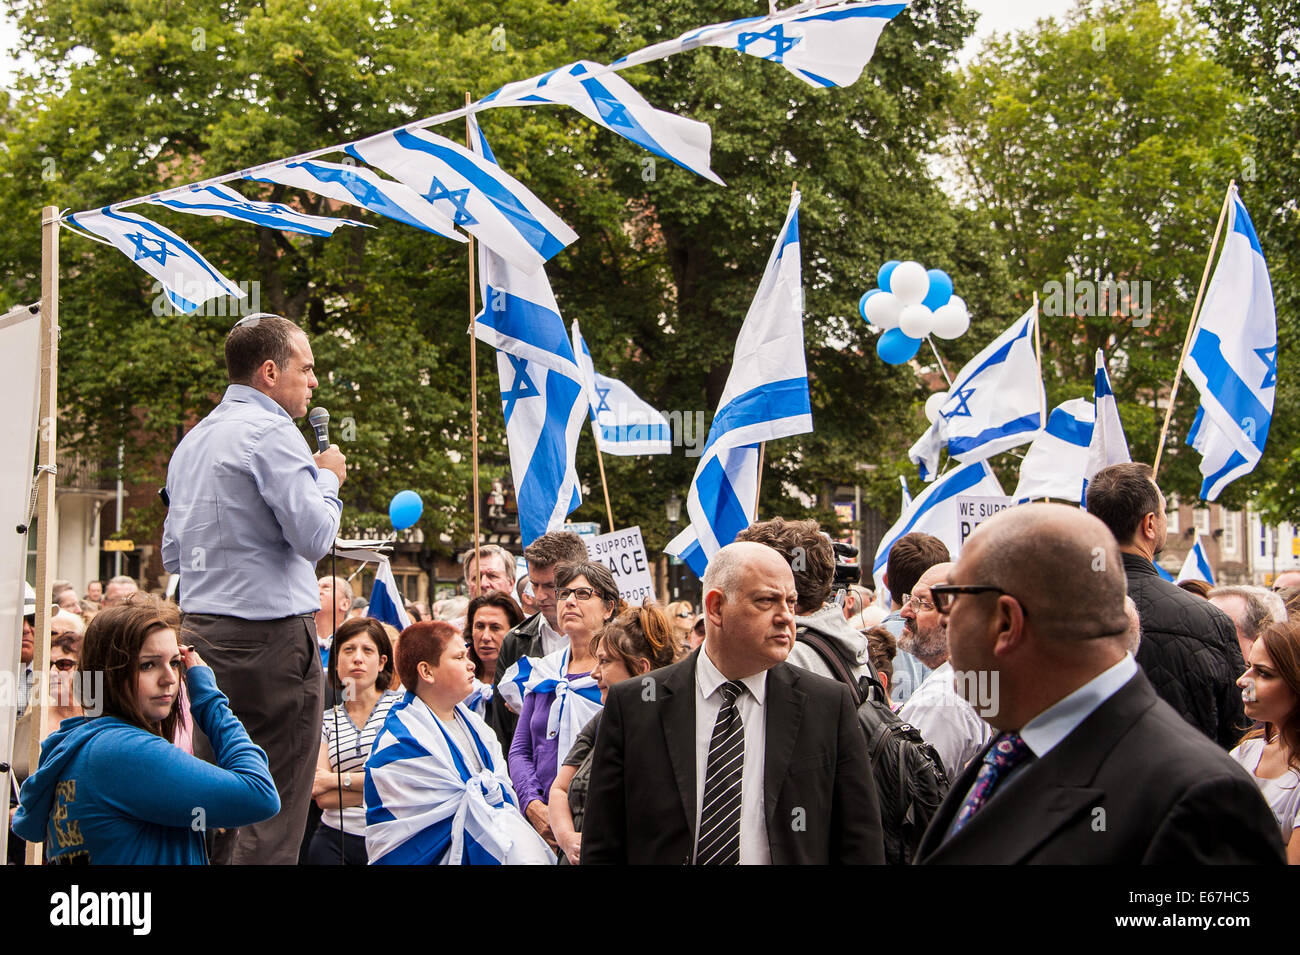 Brighton, UK. 17th Aug, 2014. Bodyguards watch the crowd as Oded Revivi, Mayor of Efrat in Israel adresses the rally - Stock Image